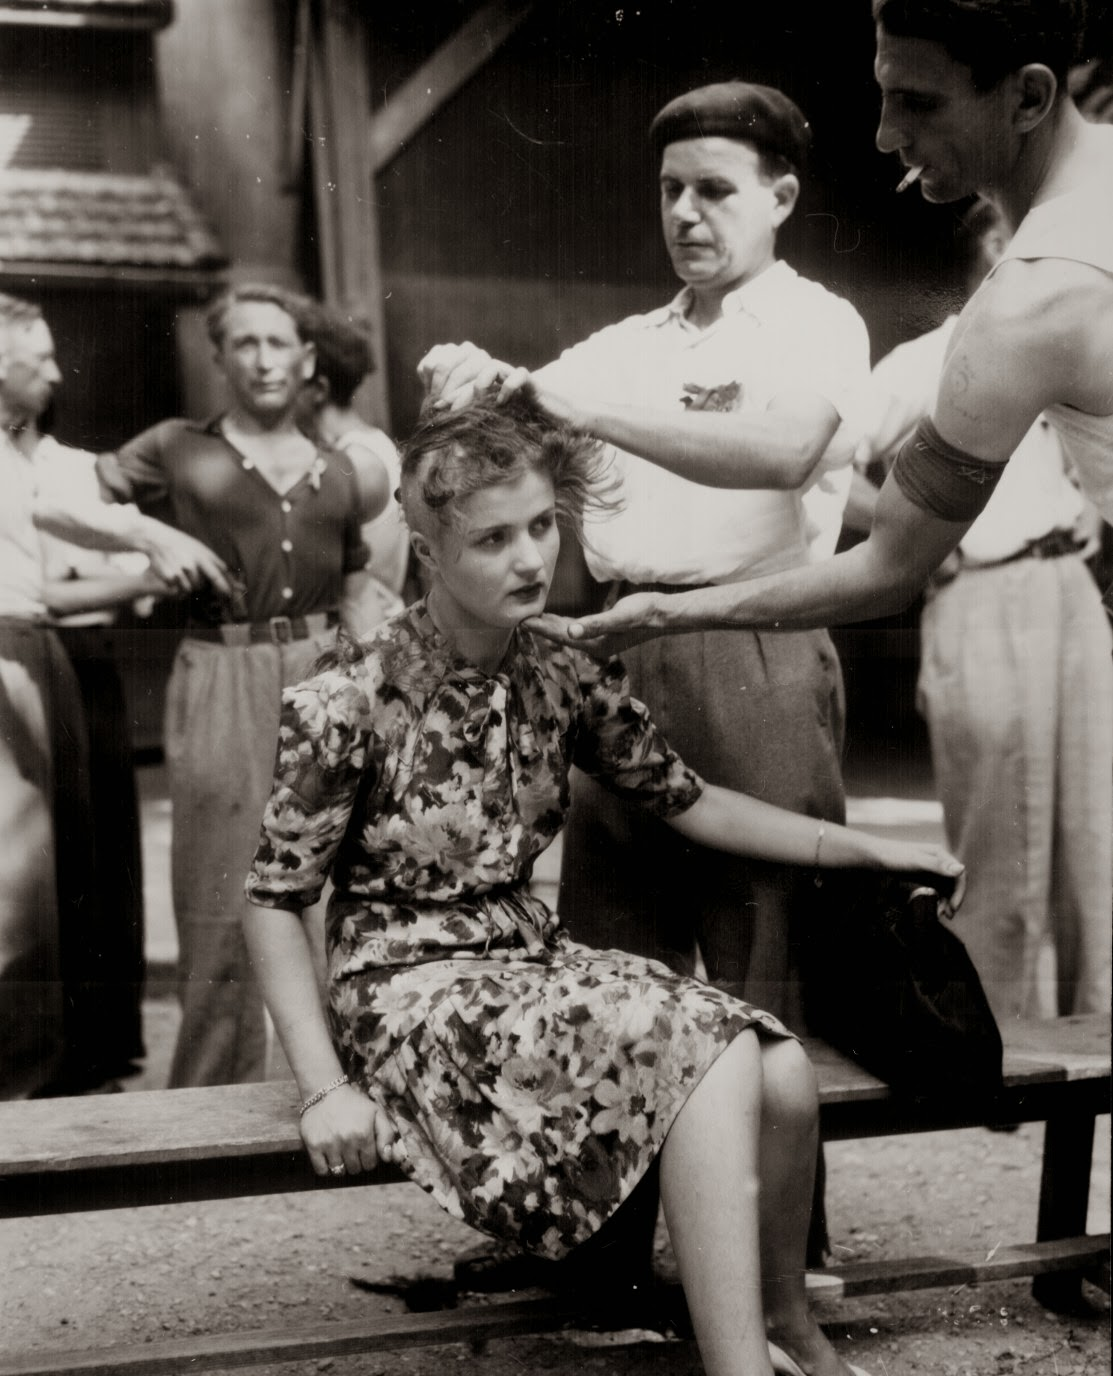 a-french-woman-has-her-head-shaved-by-civilians-as-a-penalty-for-having-consorted-with-german-troops-1944